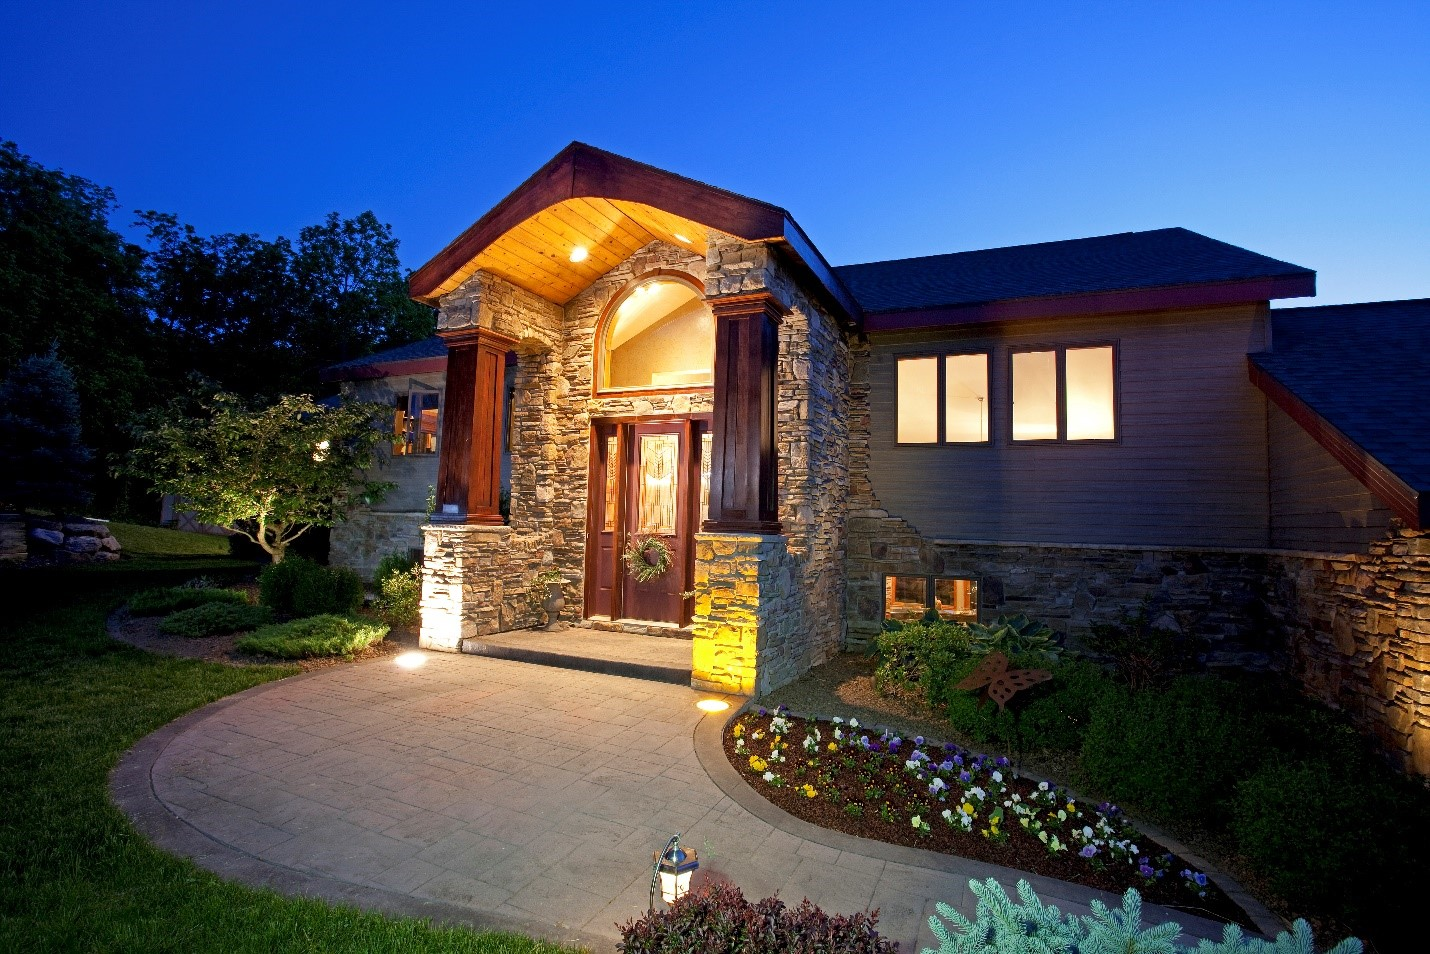 How Smart Lighting Can Help Bolster Security in Your New Home